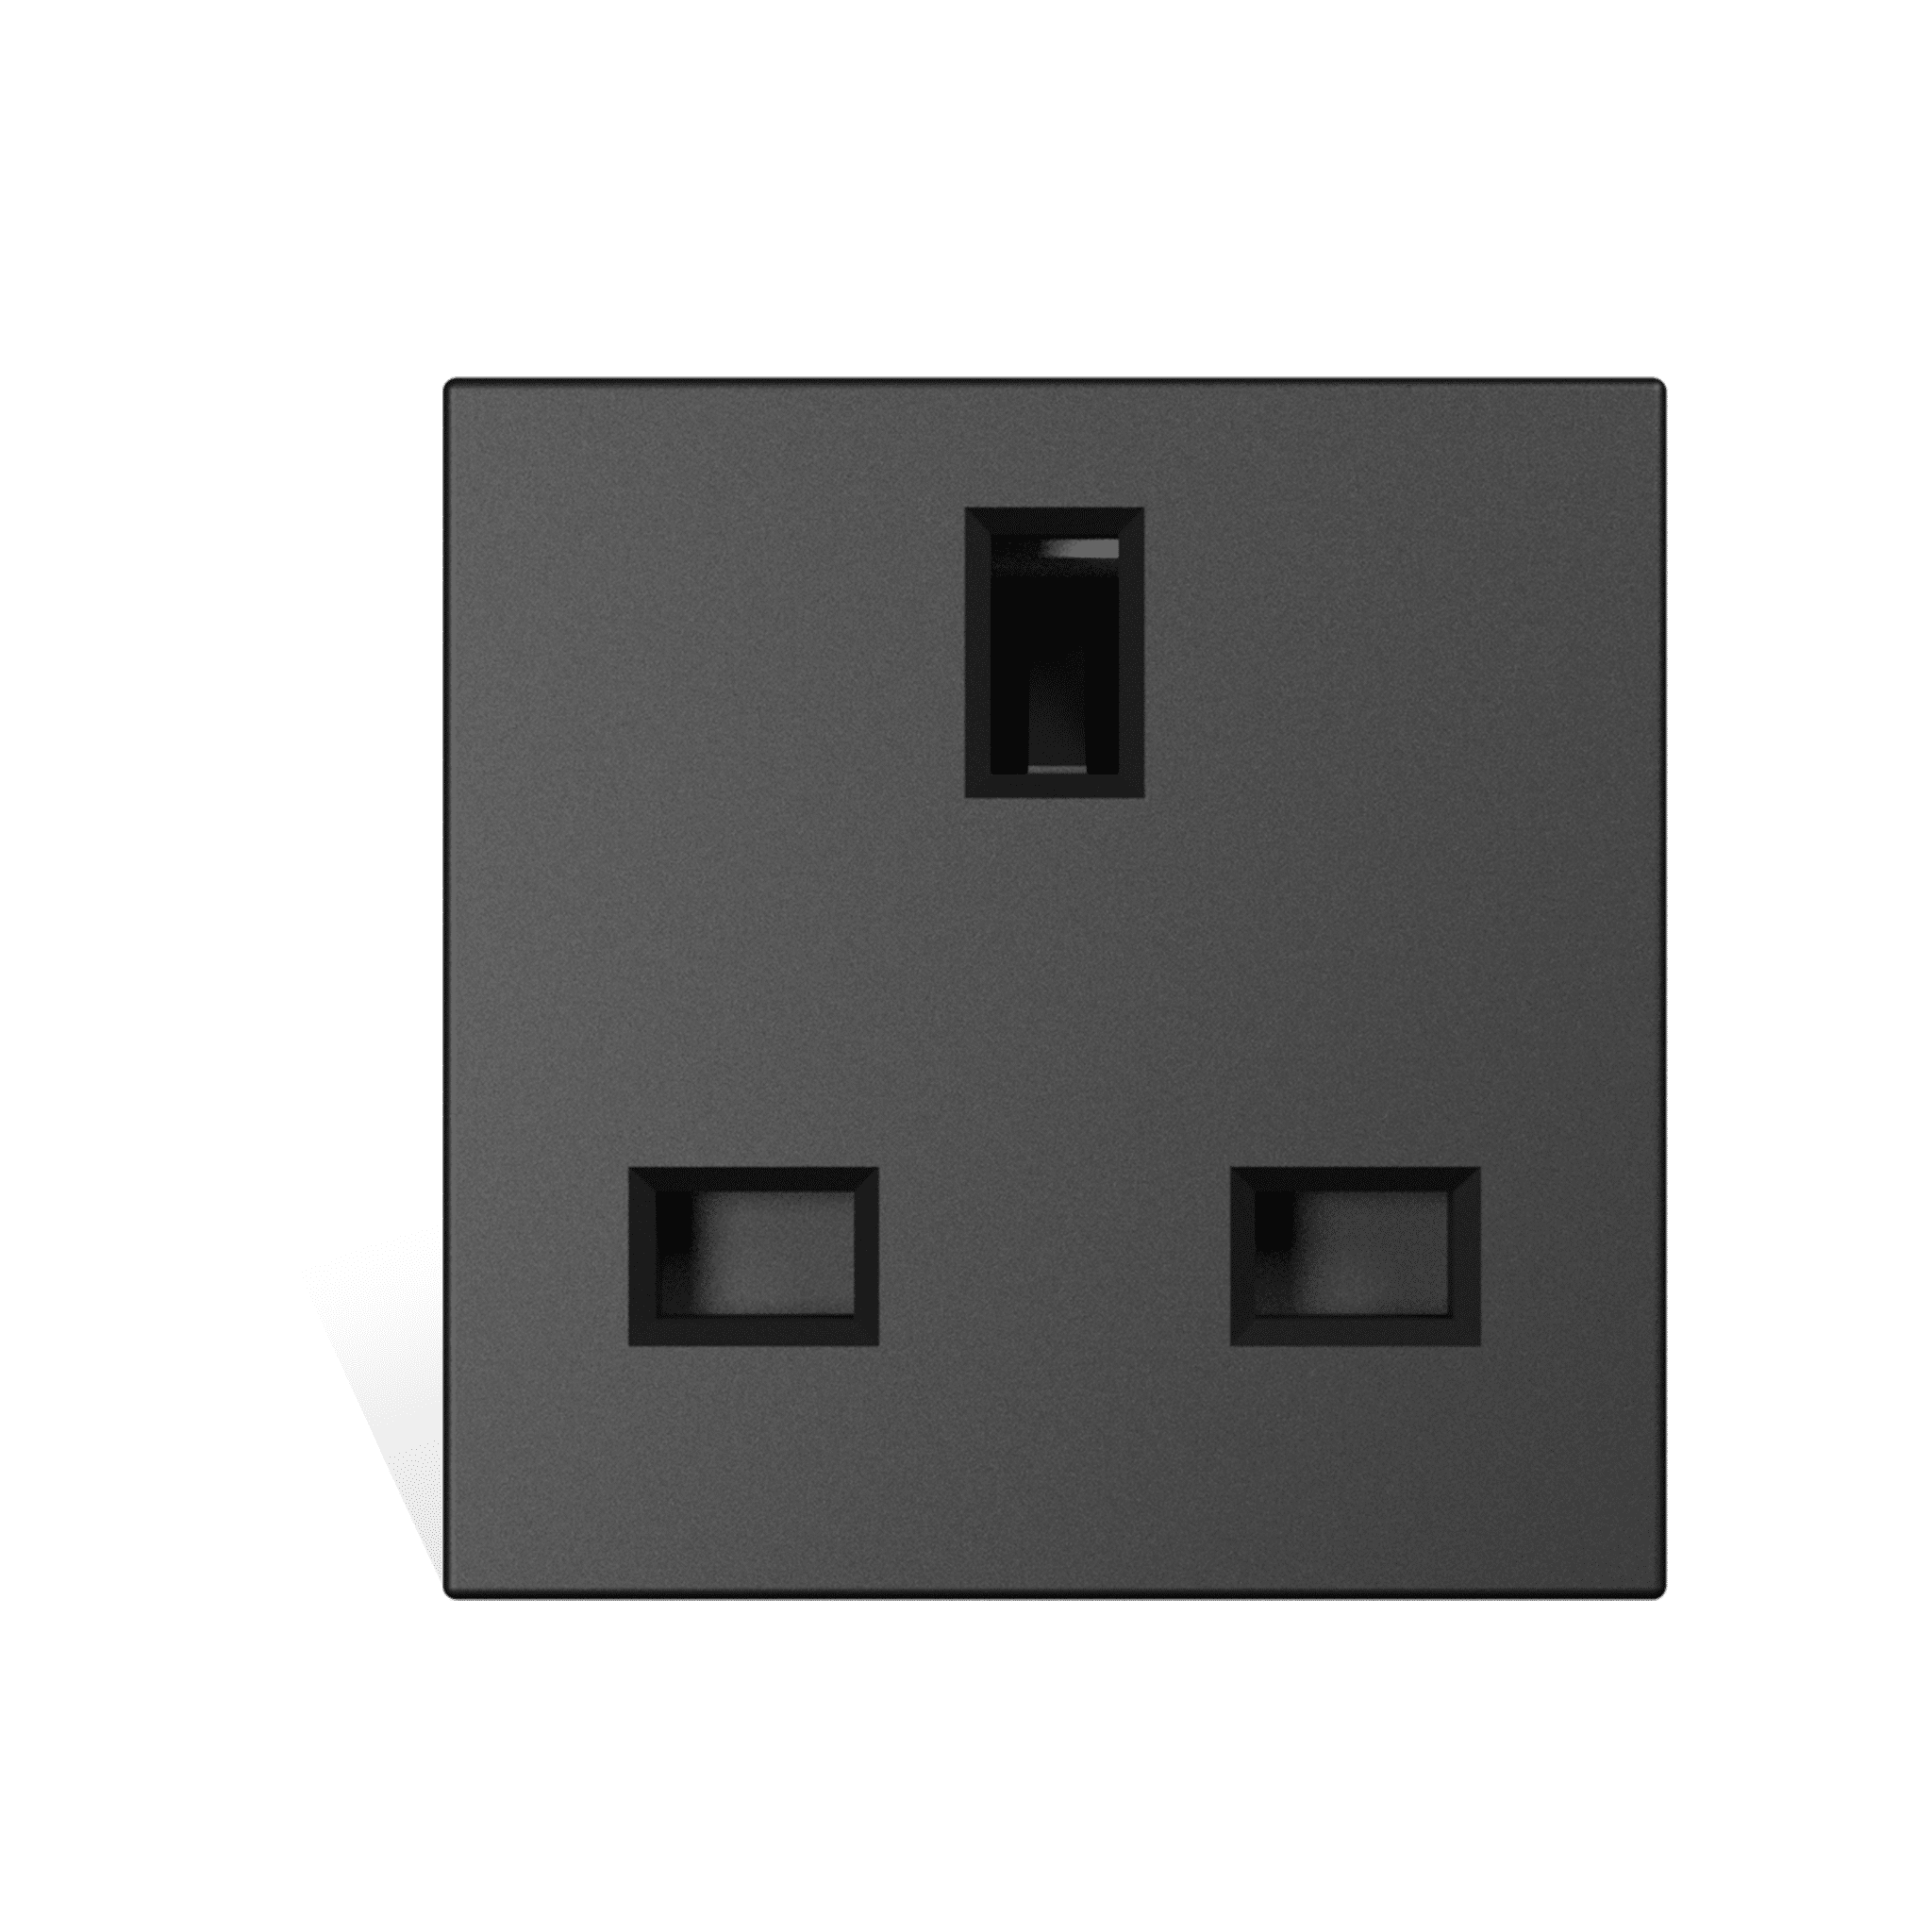 CP45PUK - Connection module - UK power socket